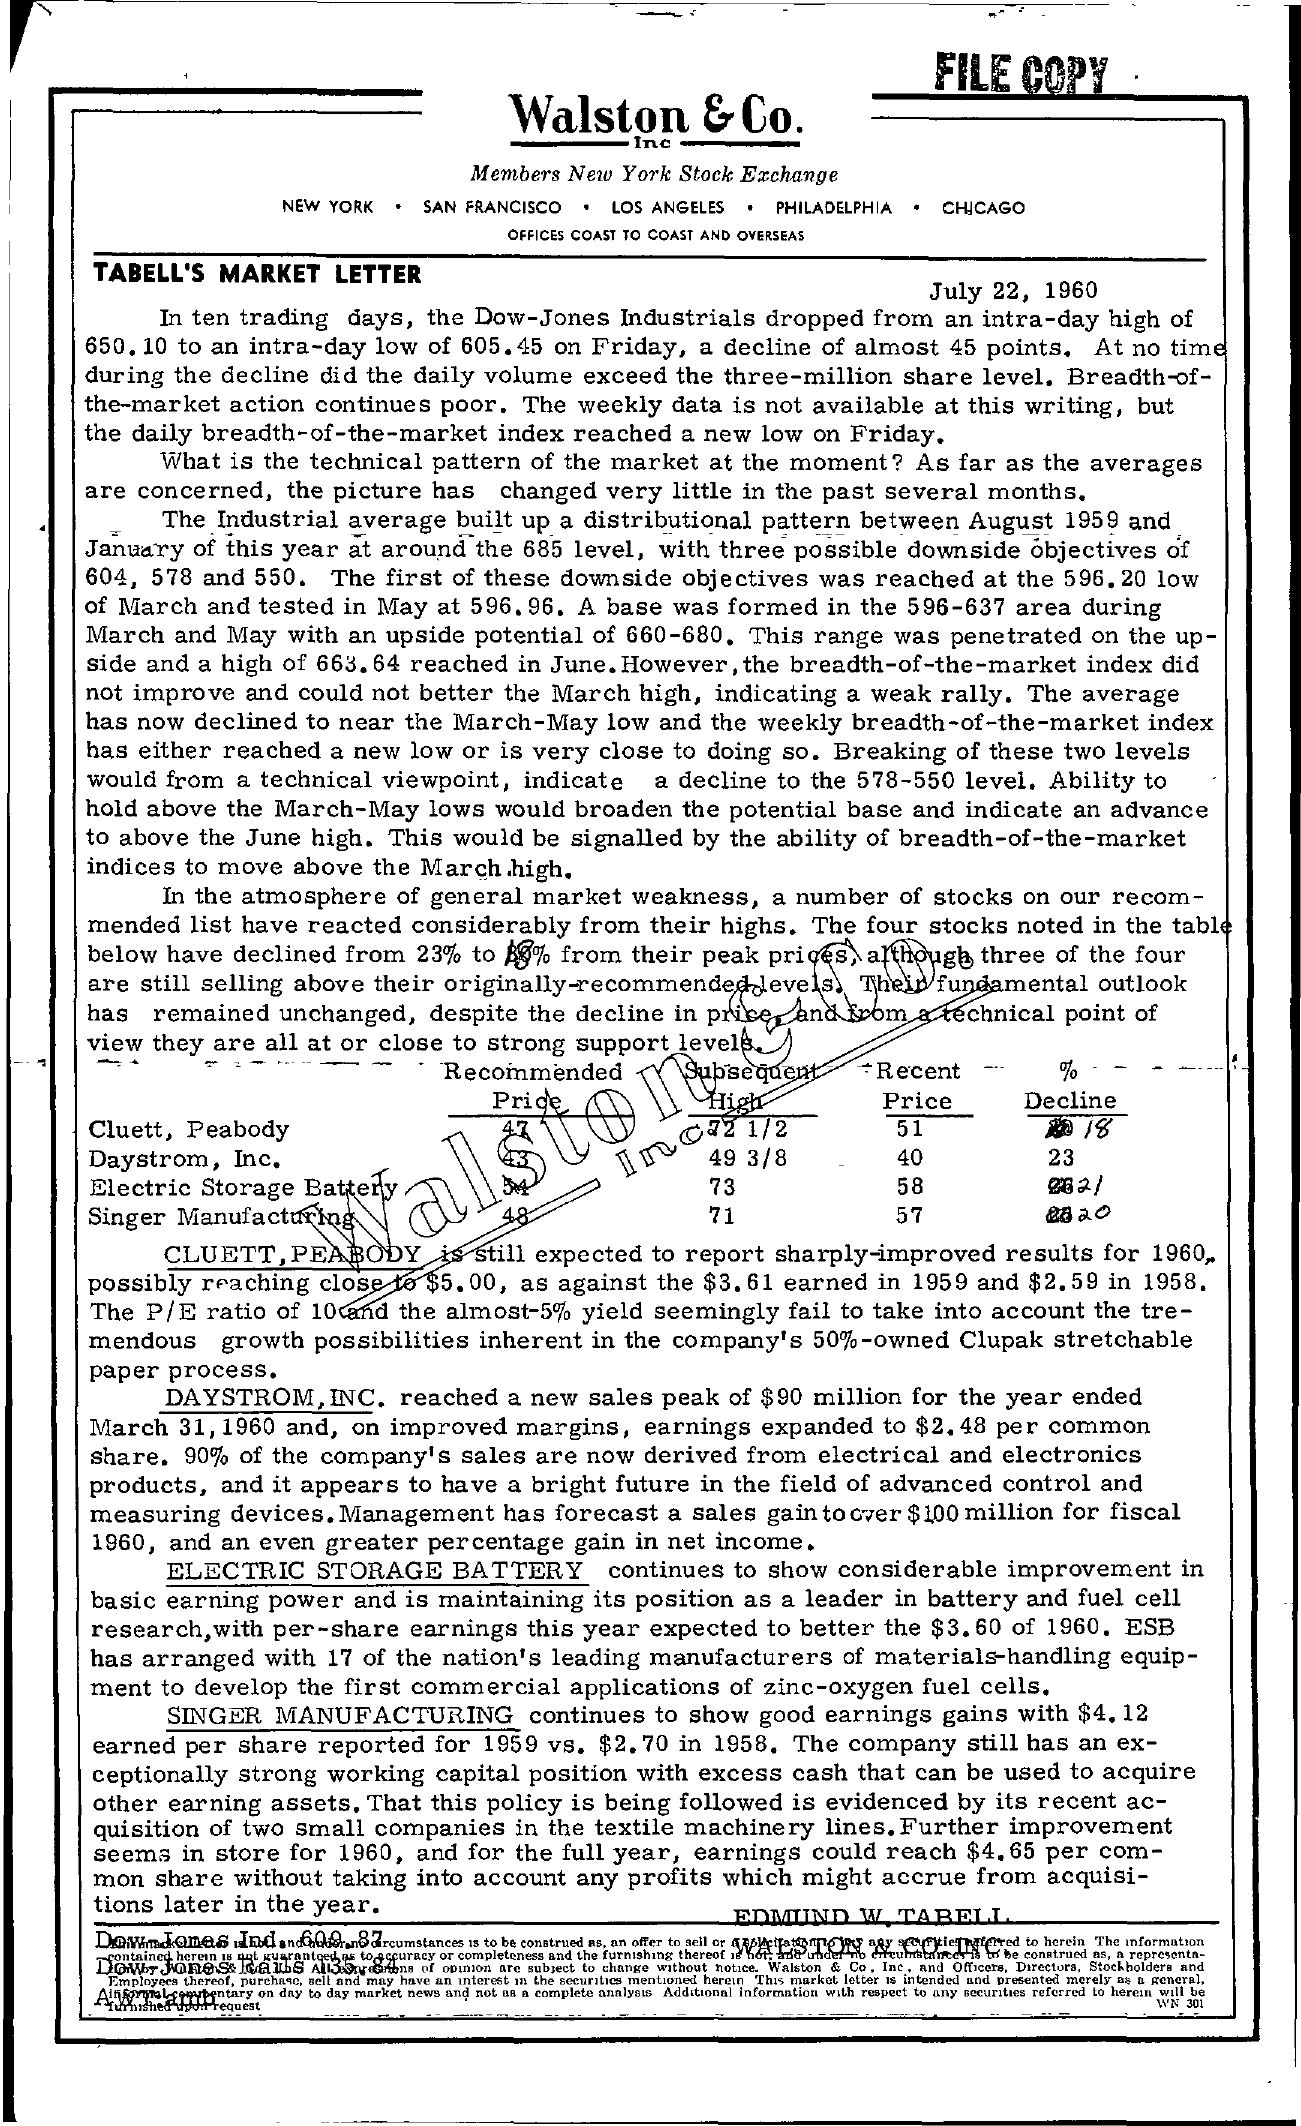 Tabell's Market Letter - July 22, 1960